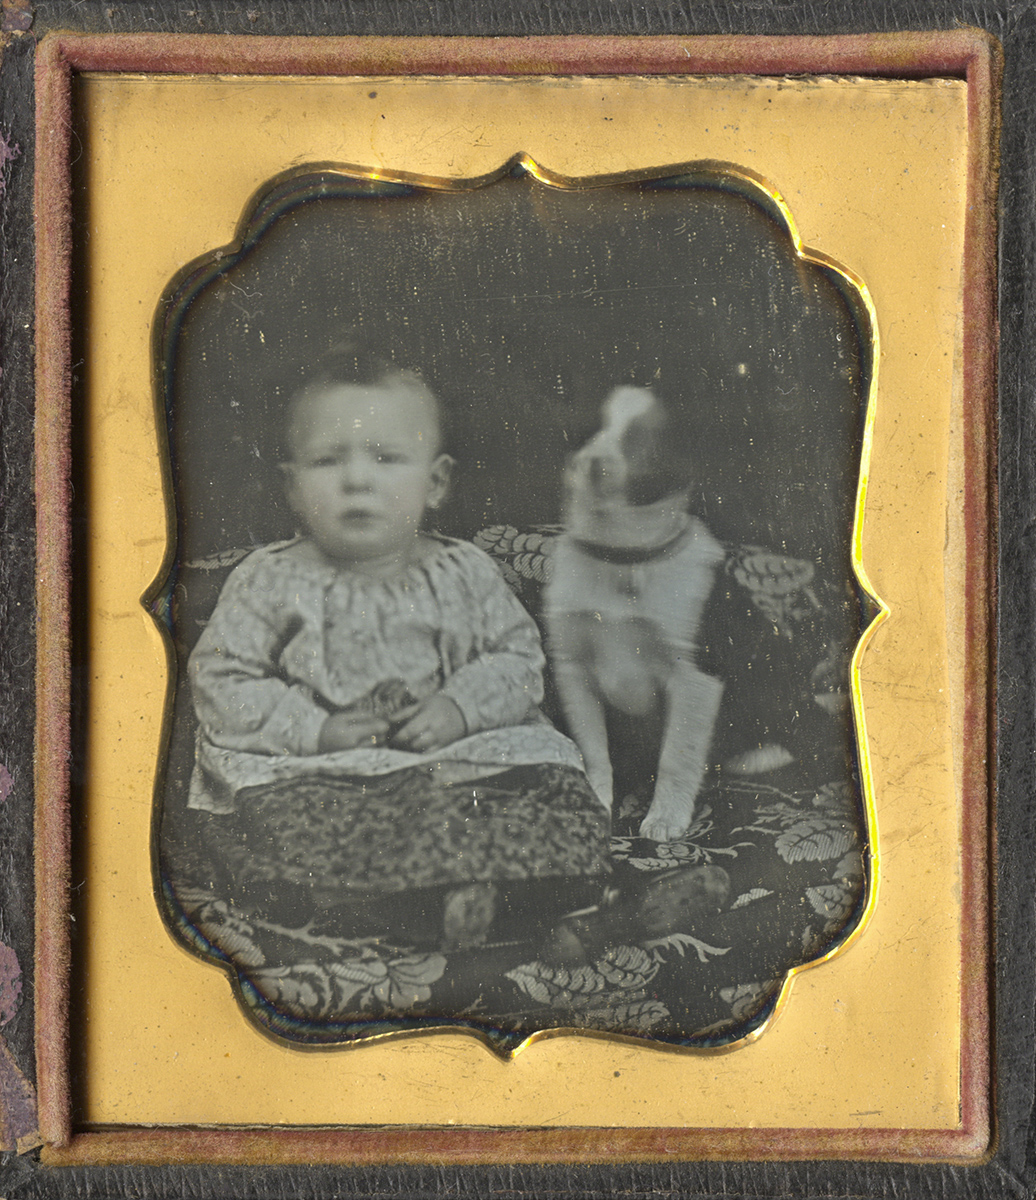 Portrait of a Child and a Blurred Dog